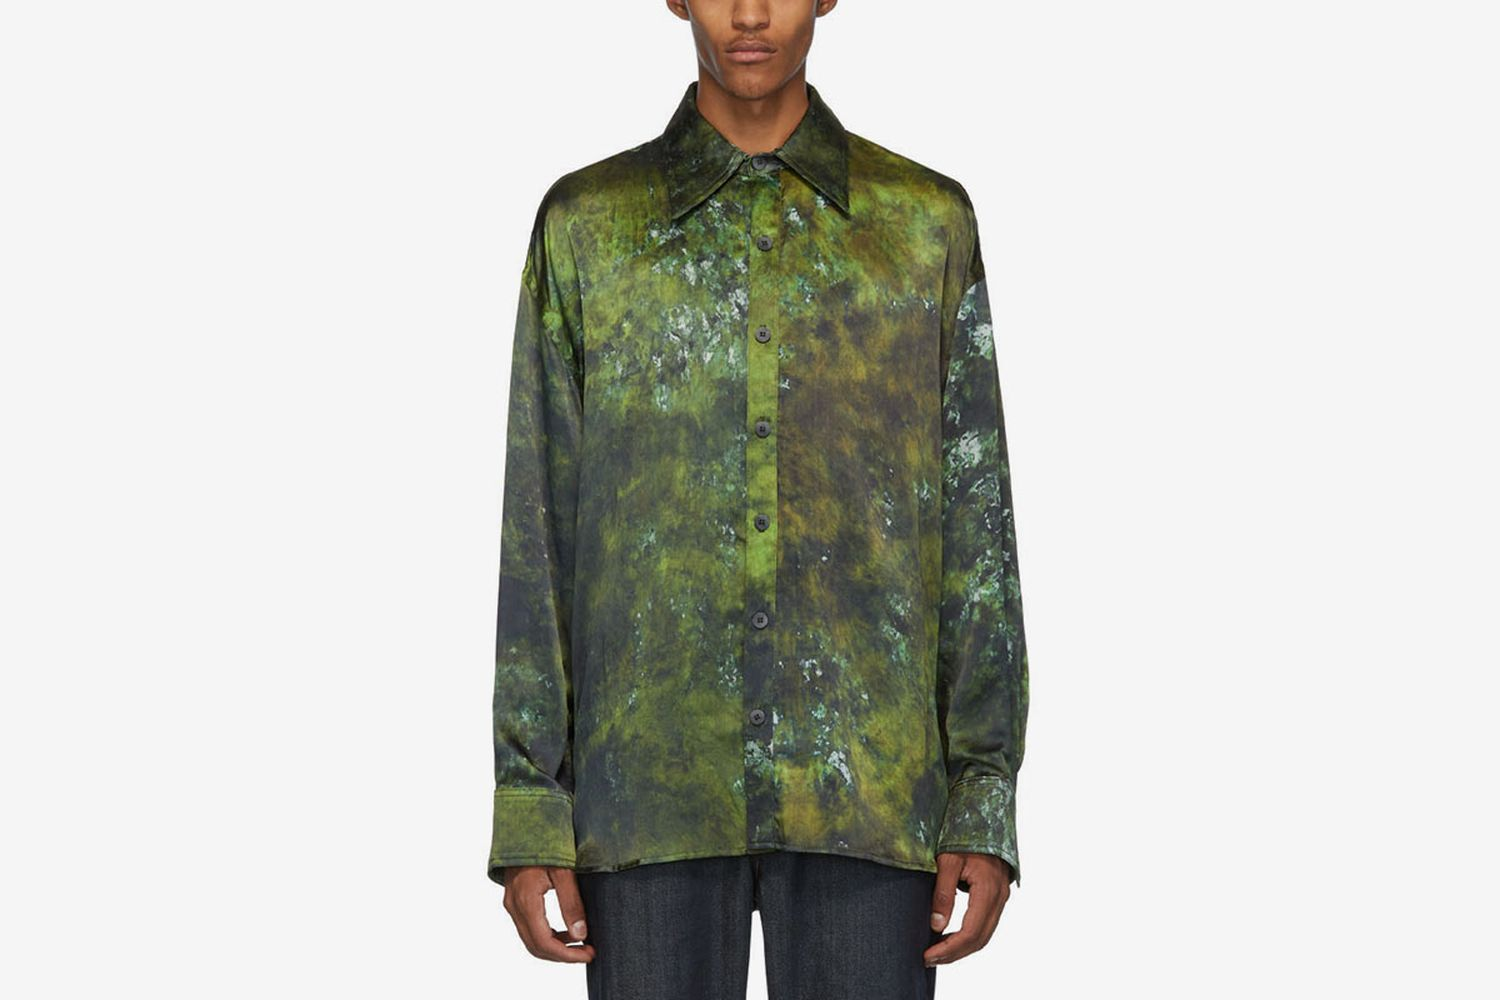 SOTO Hand-Dyed Silk Shirt